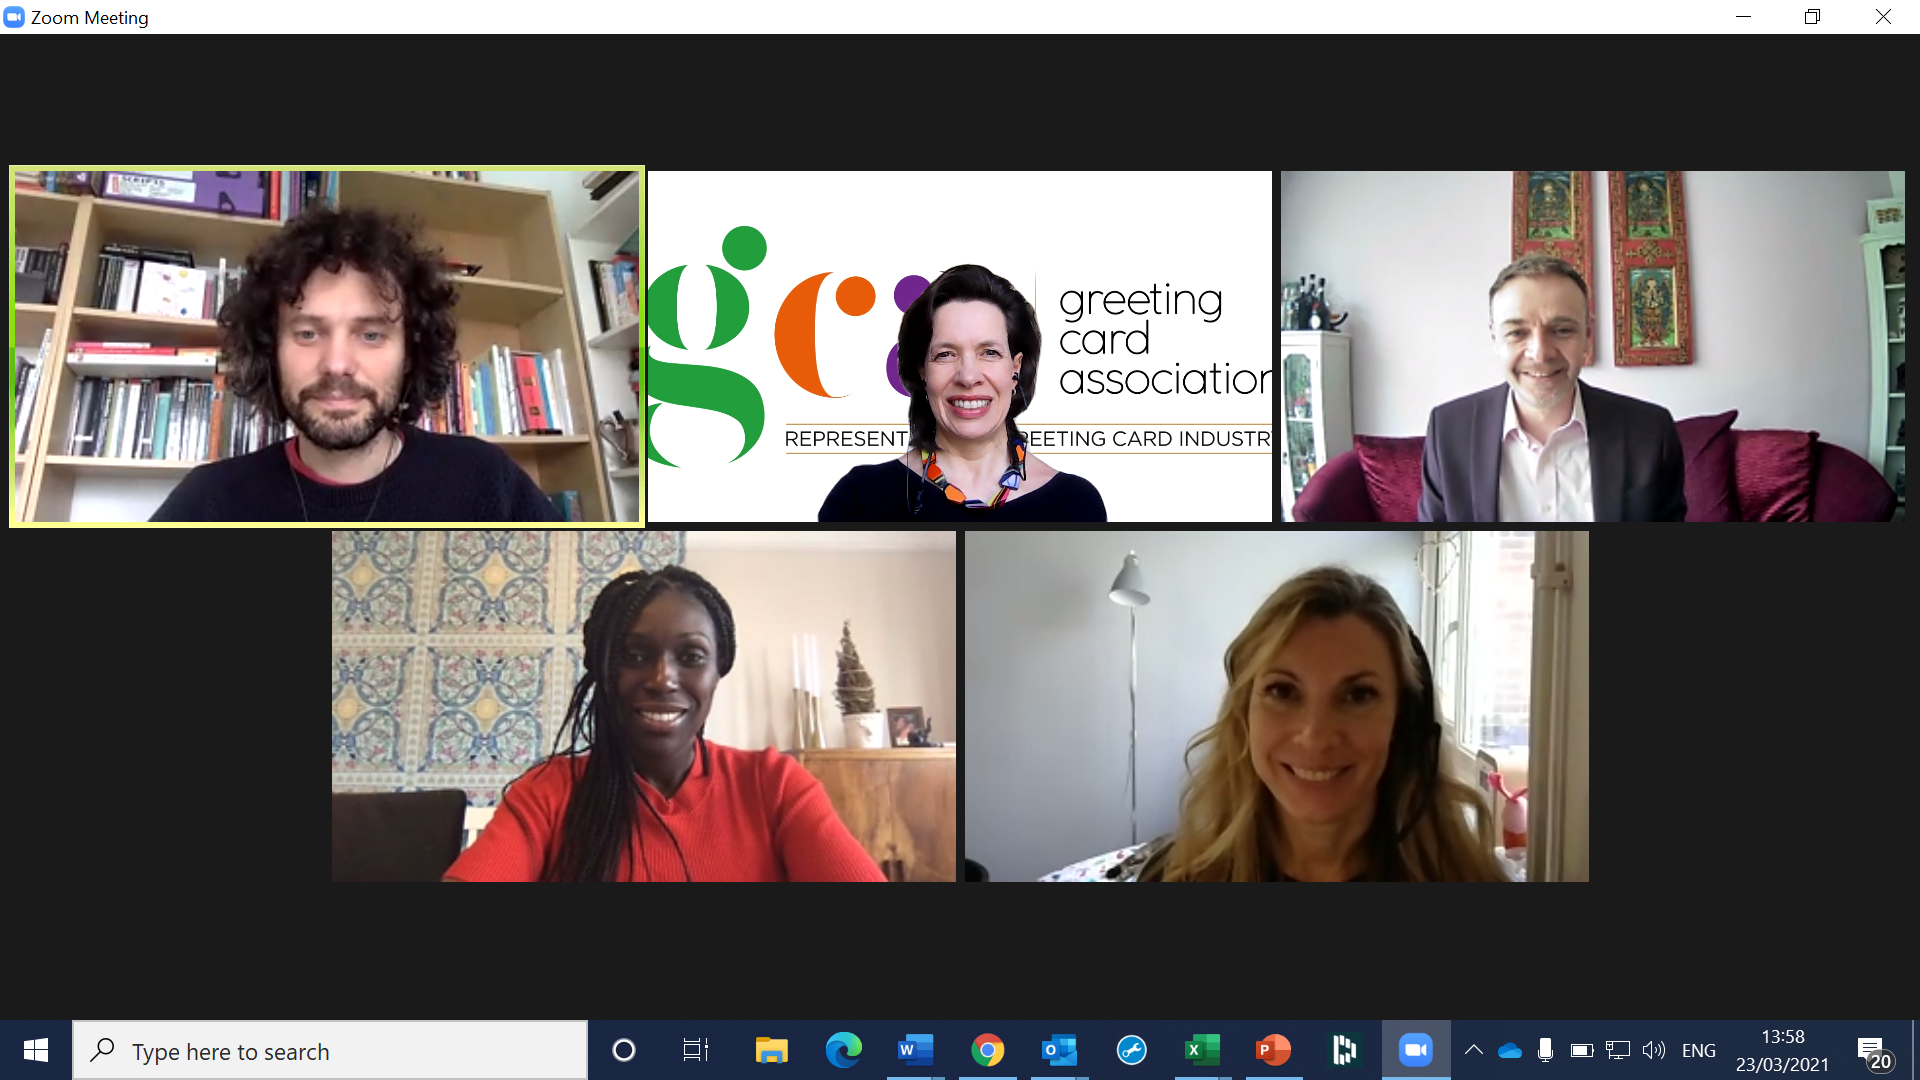 Above: (left-right, top to bottom) Dr Thomas Cuschieri (University of Hertfordshire), Amanda Fergusson (GCA), Chris Bryan (Second Nature), Adriana Lovesy (Mrs Lovesy) and Grace Elphinstone (Carte Blanche) on the Zoom lecture. (The students were not visible).